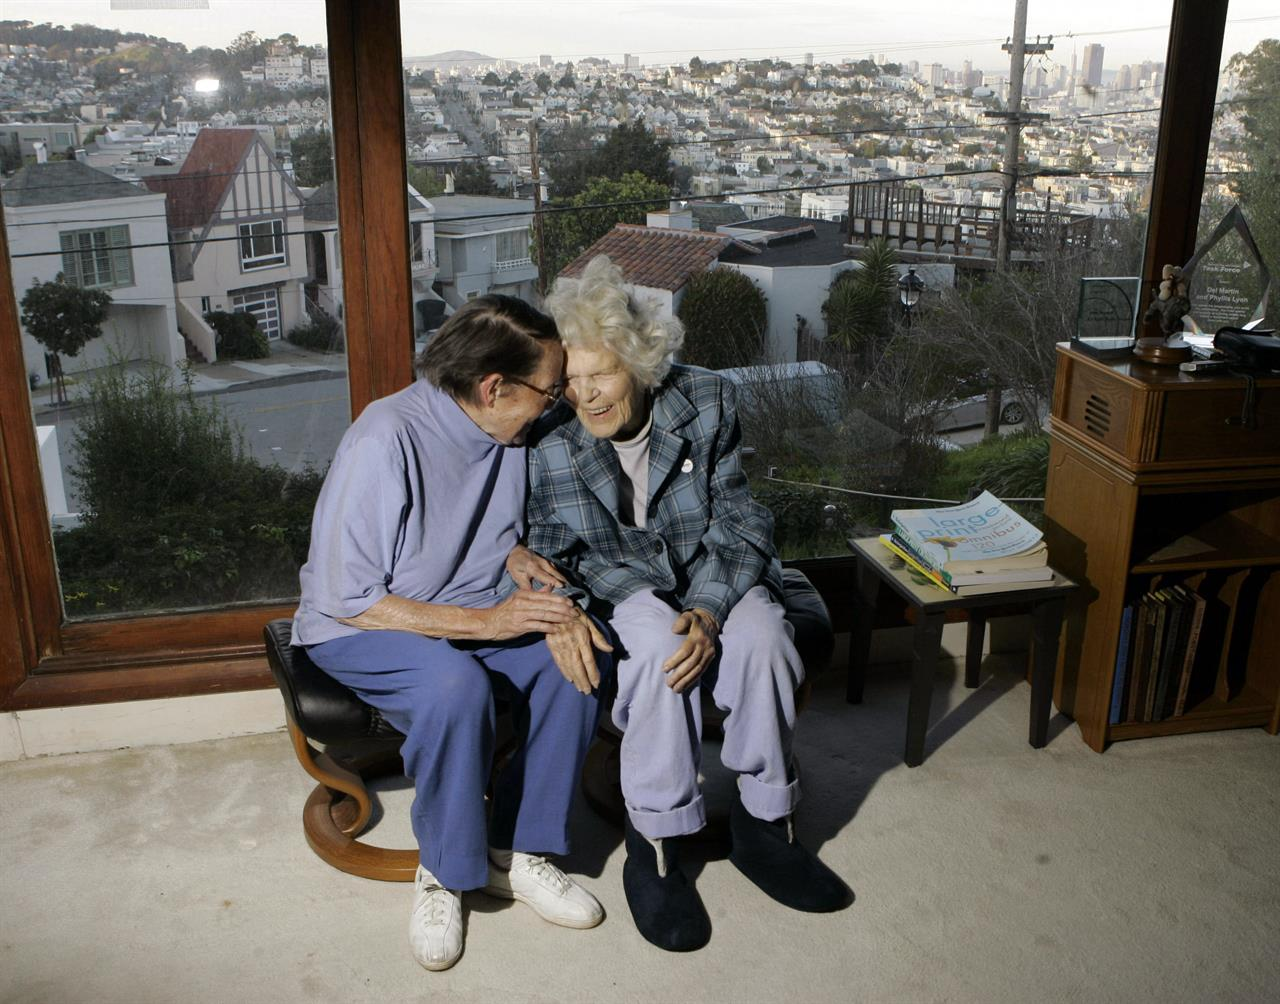 FILE - In this March 3, 2008, file photo, Phyllis Lyon, left, and Del Martin are photographed at home in San Francisco. The hilltop cottage of the couple that became the first same-sex partners to legally marry in San Francisco has become a city landmark. The San Francisco Board of Supervisors voted unanimously Tuesday, May 4, 2021, to give the 651 Duncan St. home of the lesbian activists landmark status. The home in the Noe Valley neighborhood is expected to become the first lesbian landmark in the western United States, the San Francisco Chronicle reported. (AP Photo/Marcio Jose Sanchez, file)